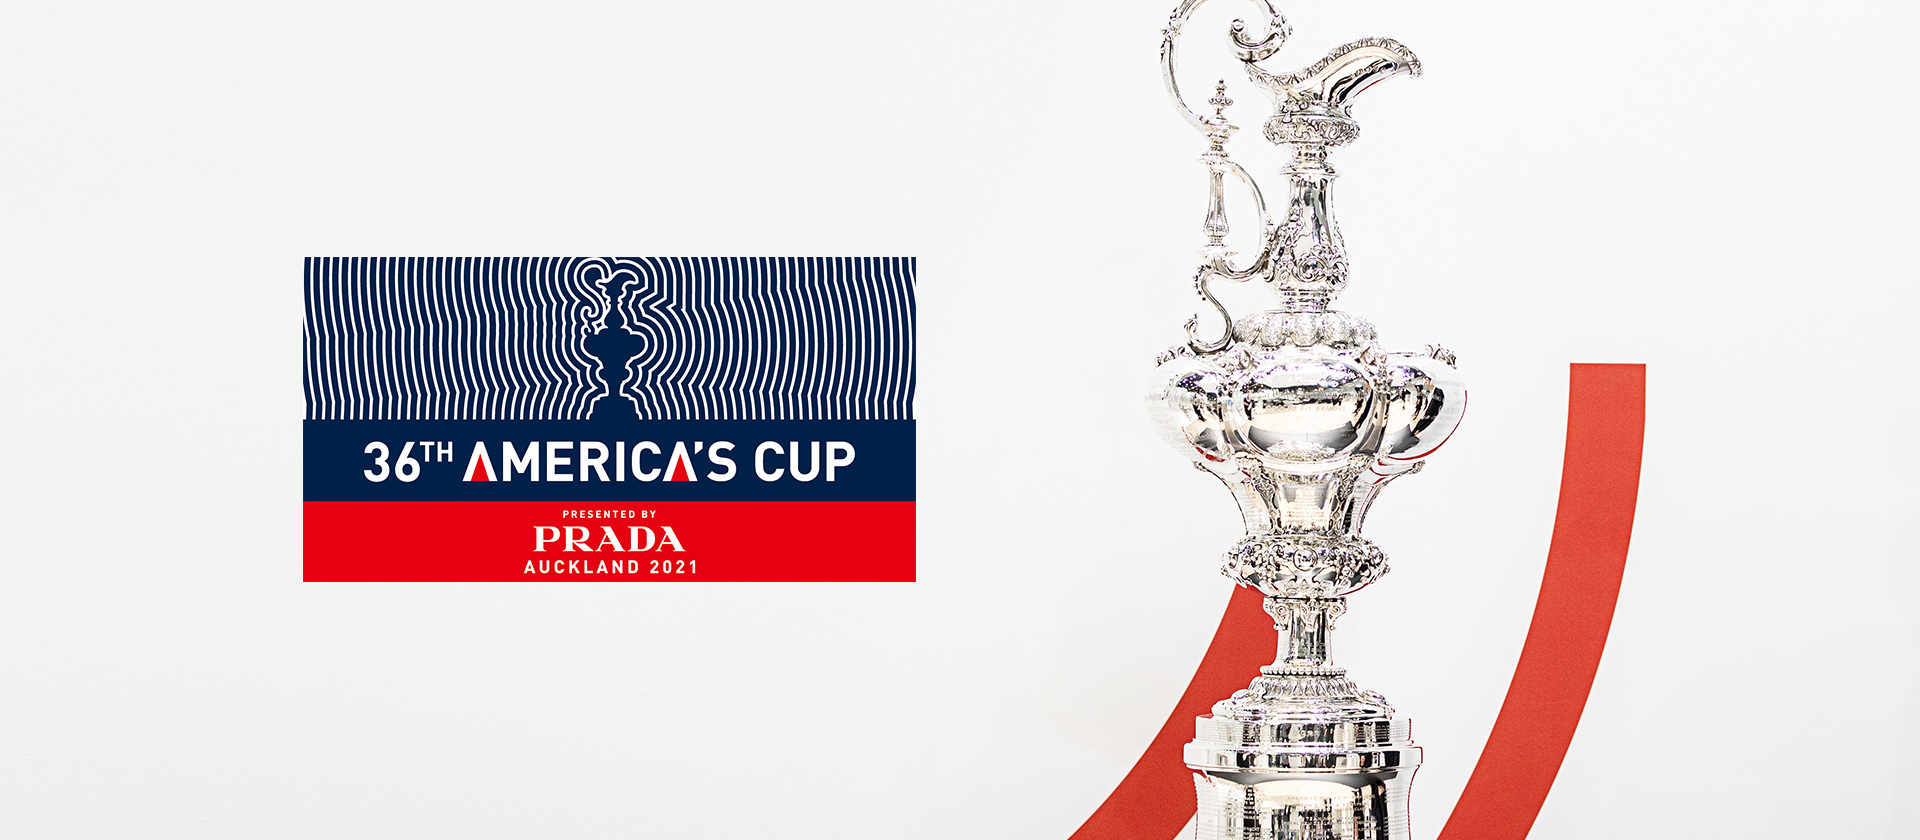 36TH AMERICA'S CUP PRESENTED BY PRADA AUCKLAND 2021